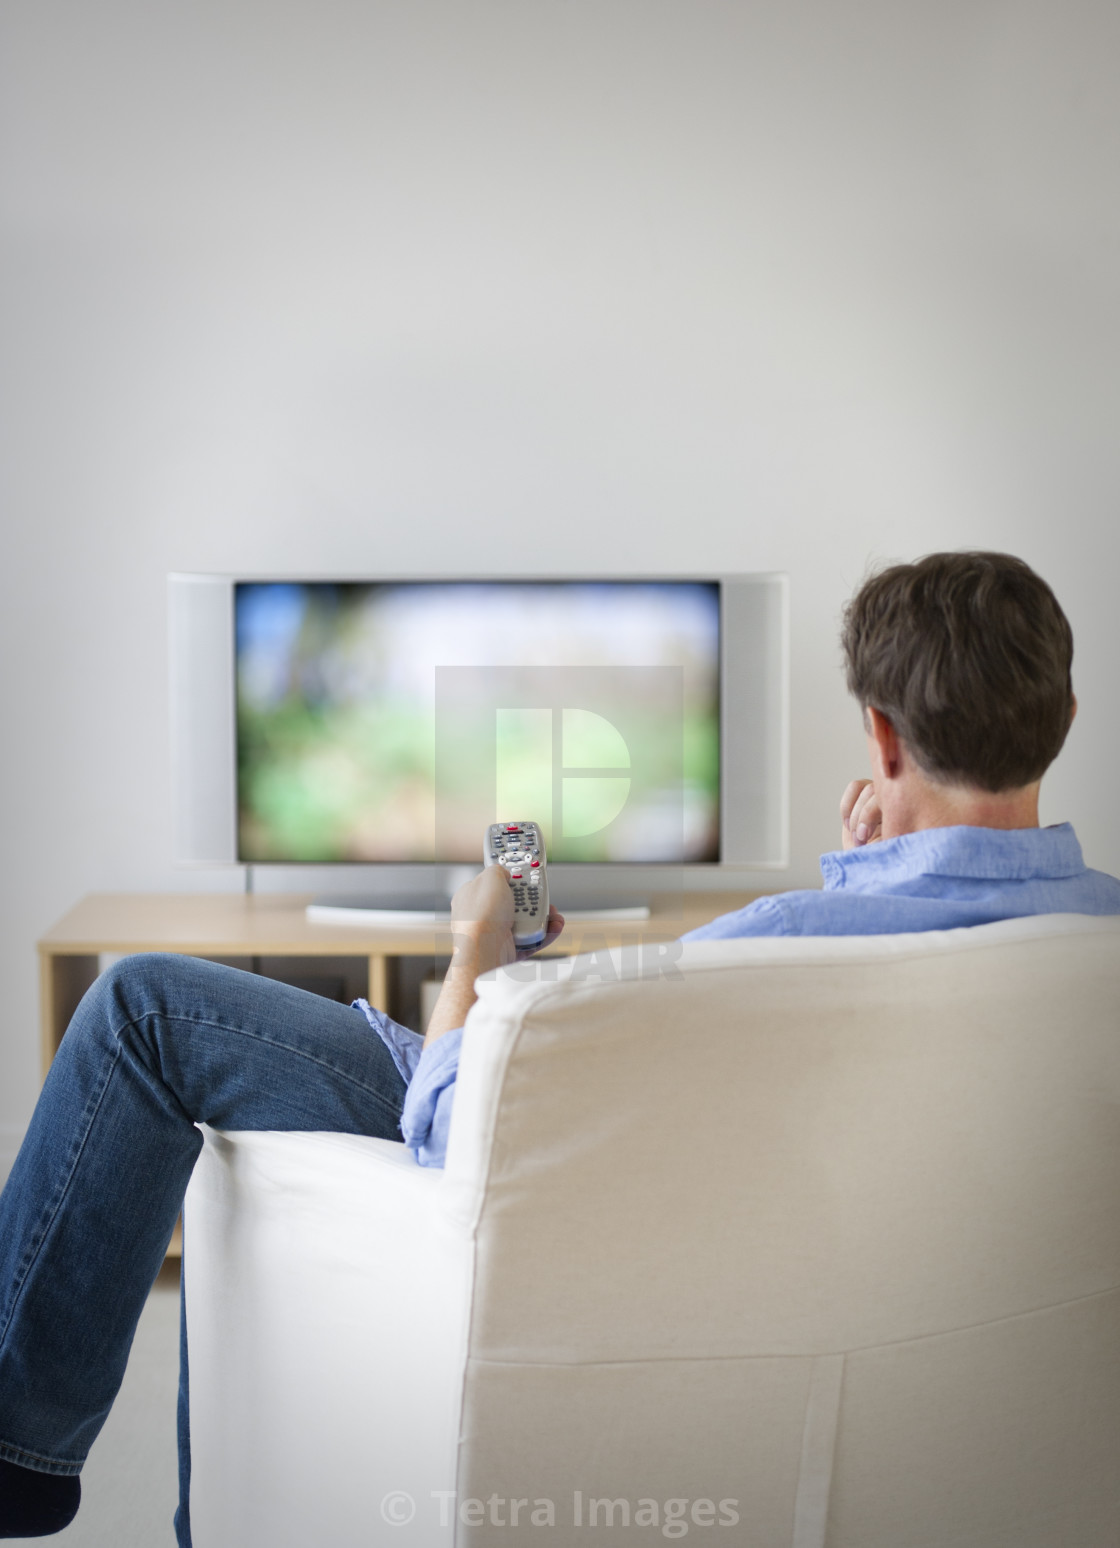 an imagination of watching television and the officer calls Imagination is the capacity to produce images, ideas and sensations in the mind without any immediate input of the senses (such as seeing or hearing) imagination helps make knowledge applicable in solving problems and is fundamental to integrating experience and the learning process.